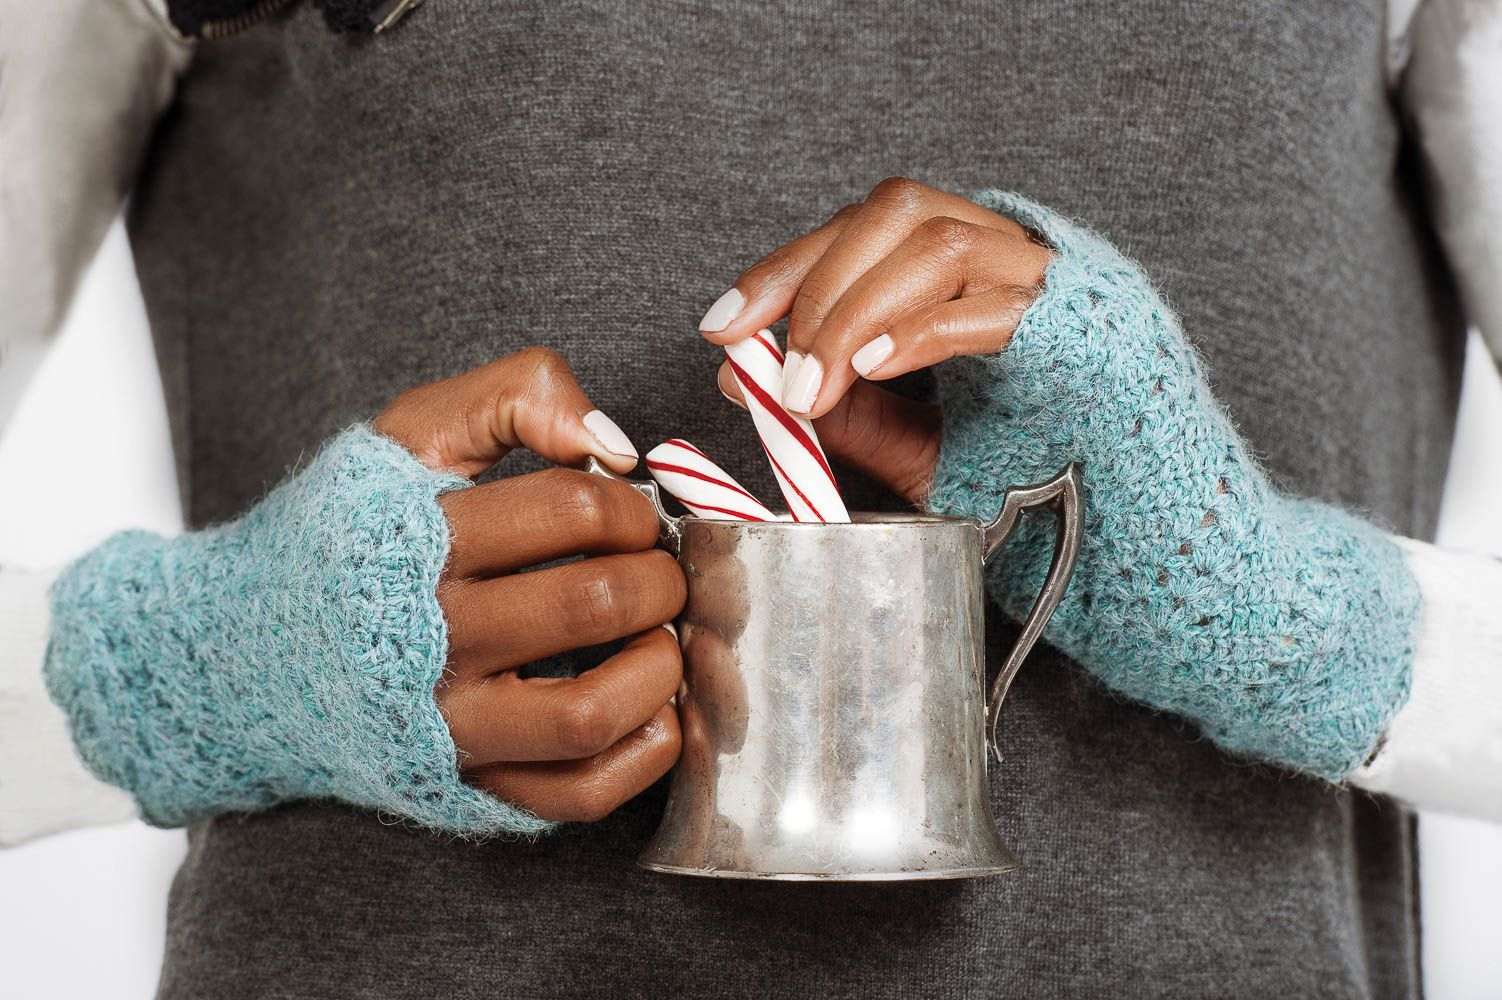 These cozy arm warmers featuring a delicate eyelet pattern in icy blue hues are sure to warm your heart and hands this season.